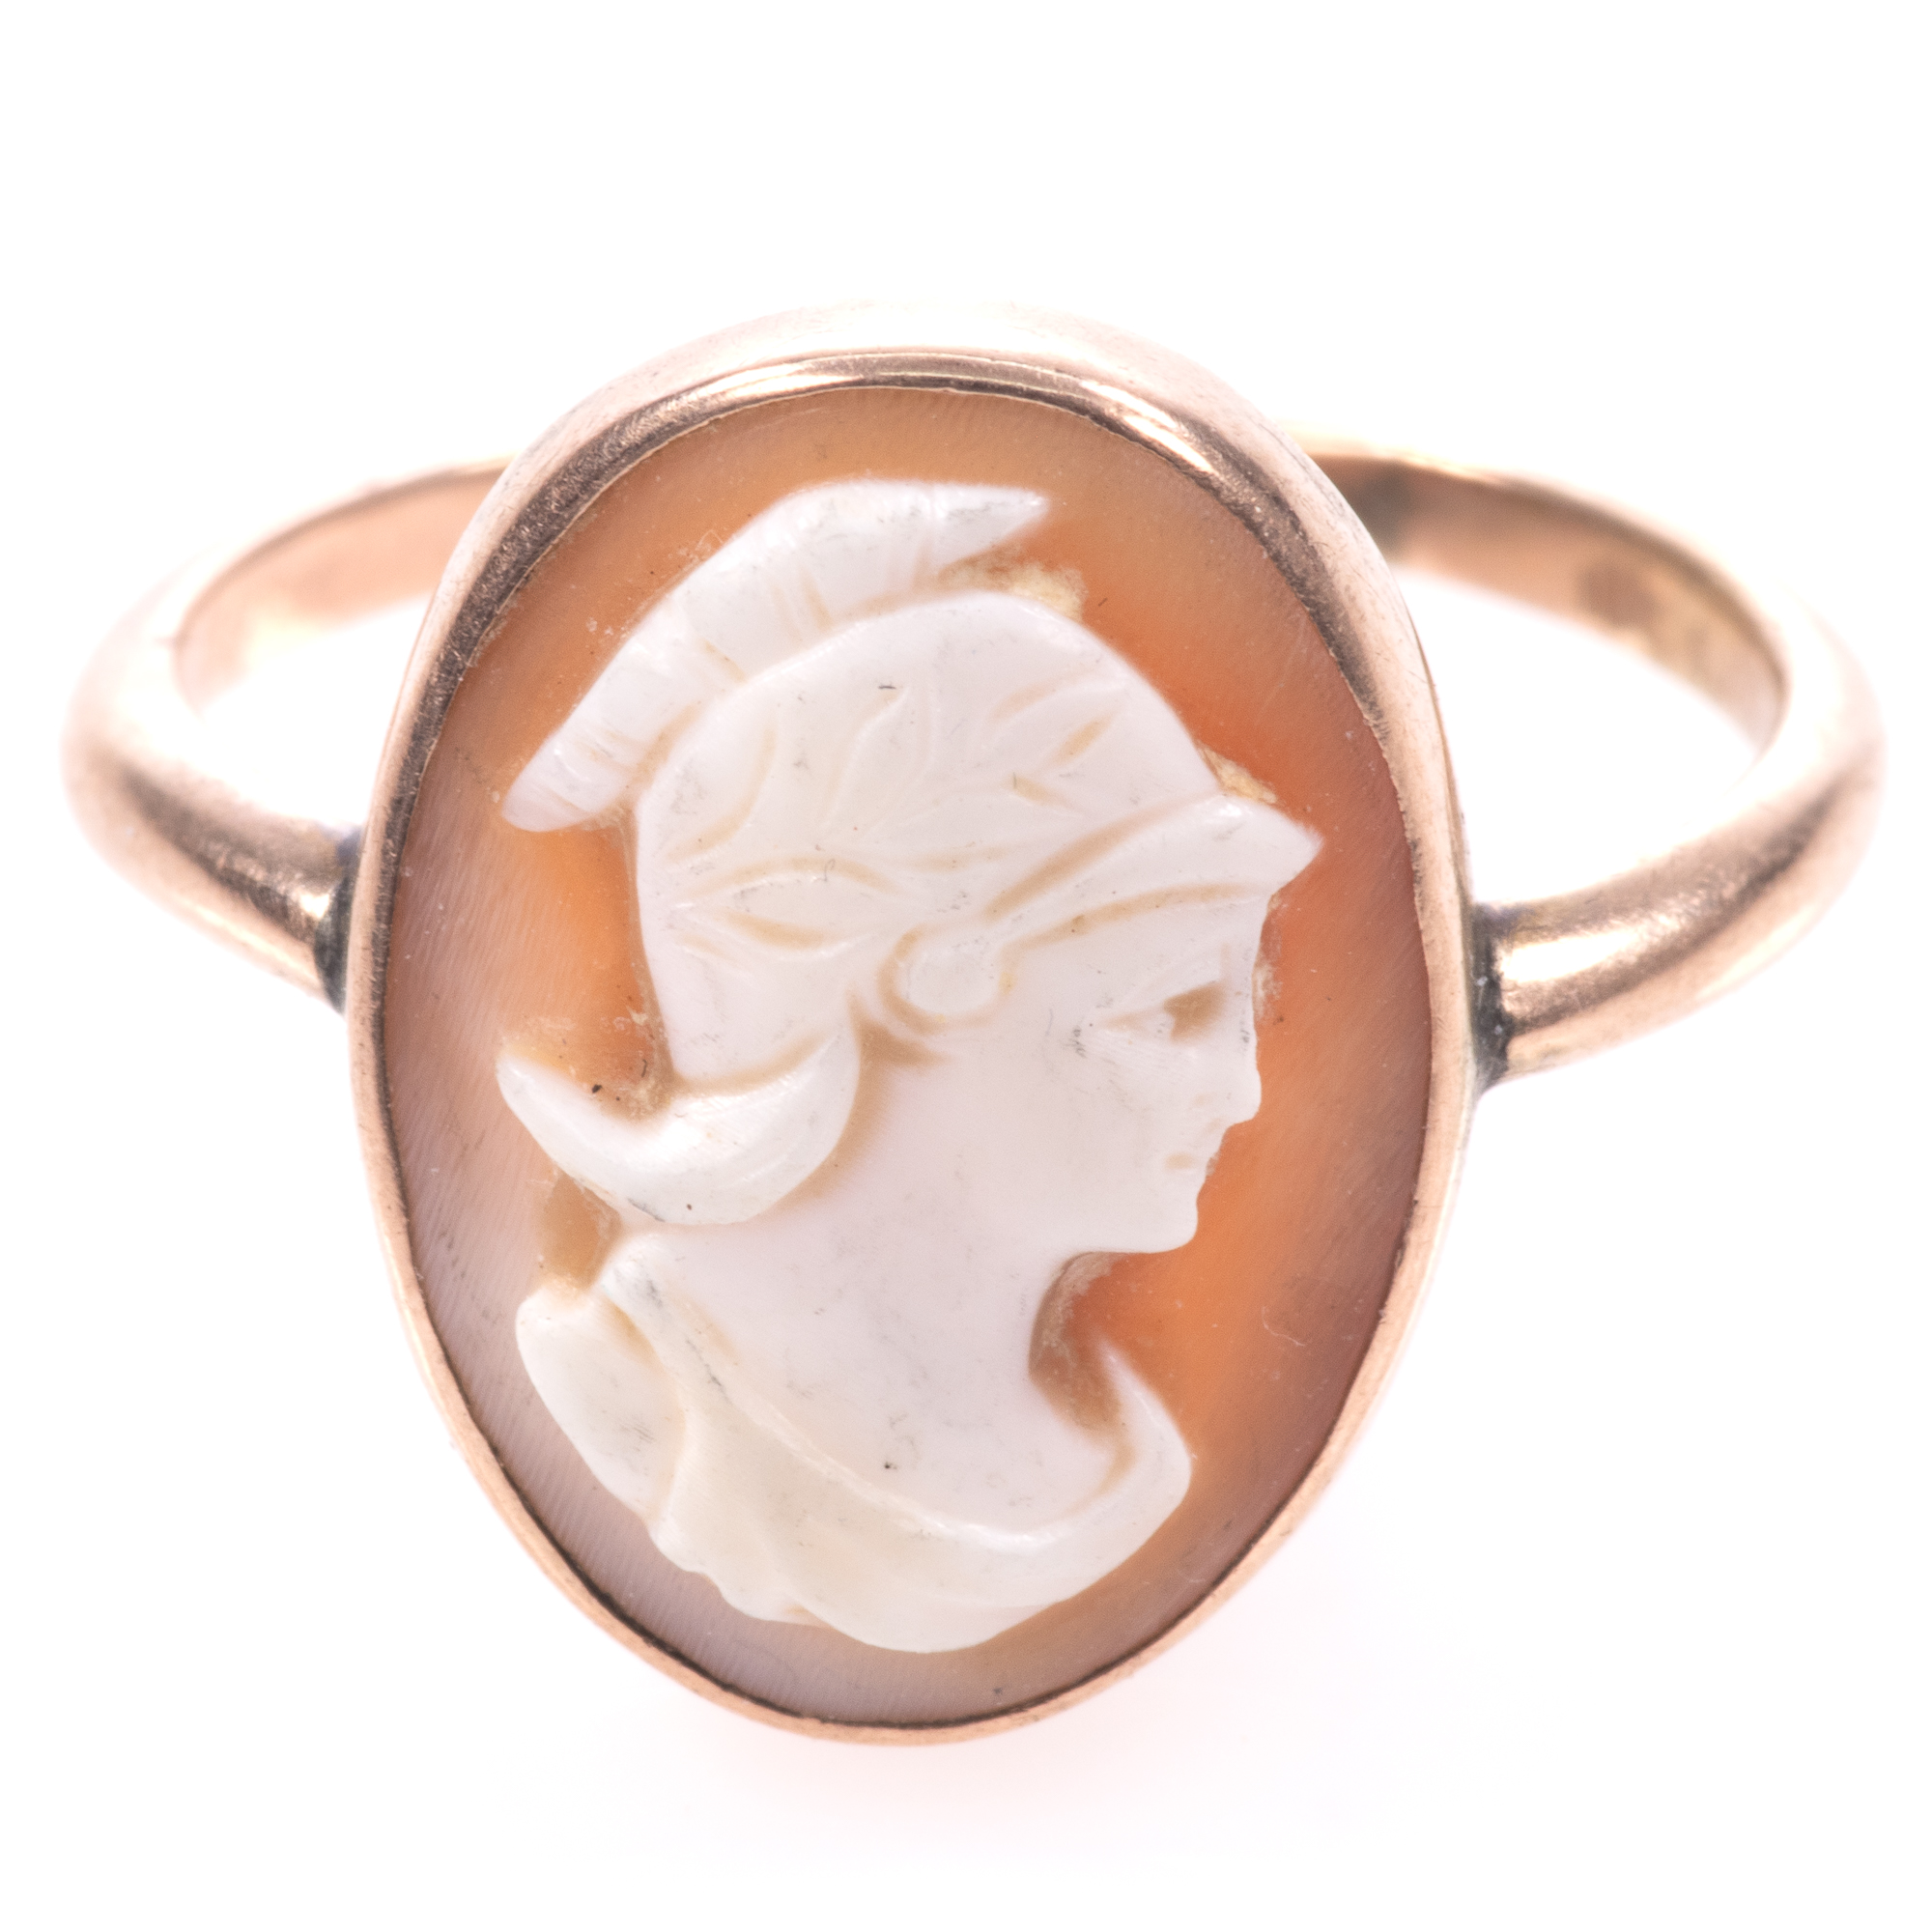 9ct Gold Roman Cameo Ring - Image 3 of 7